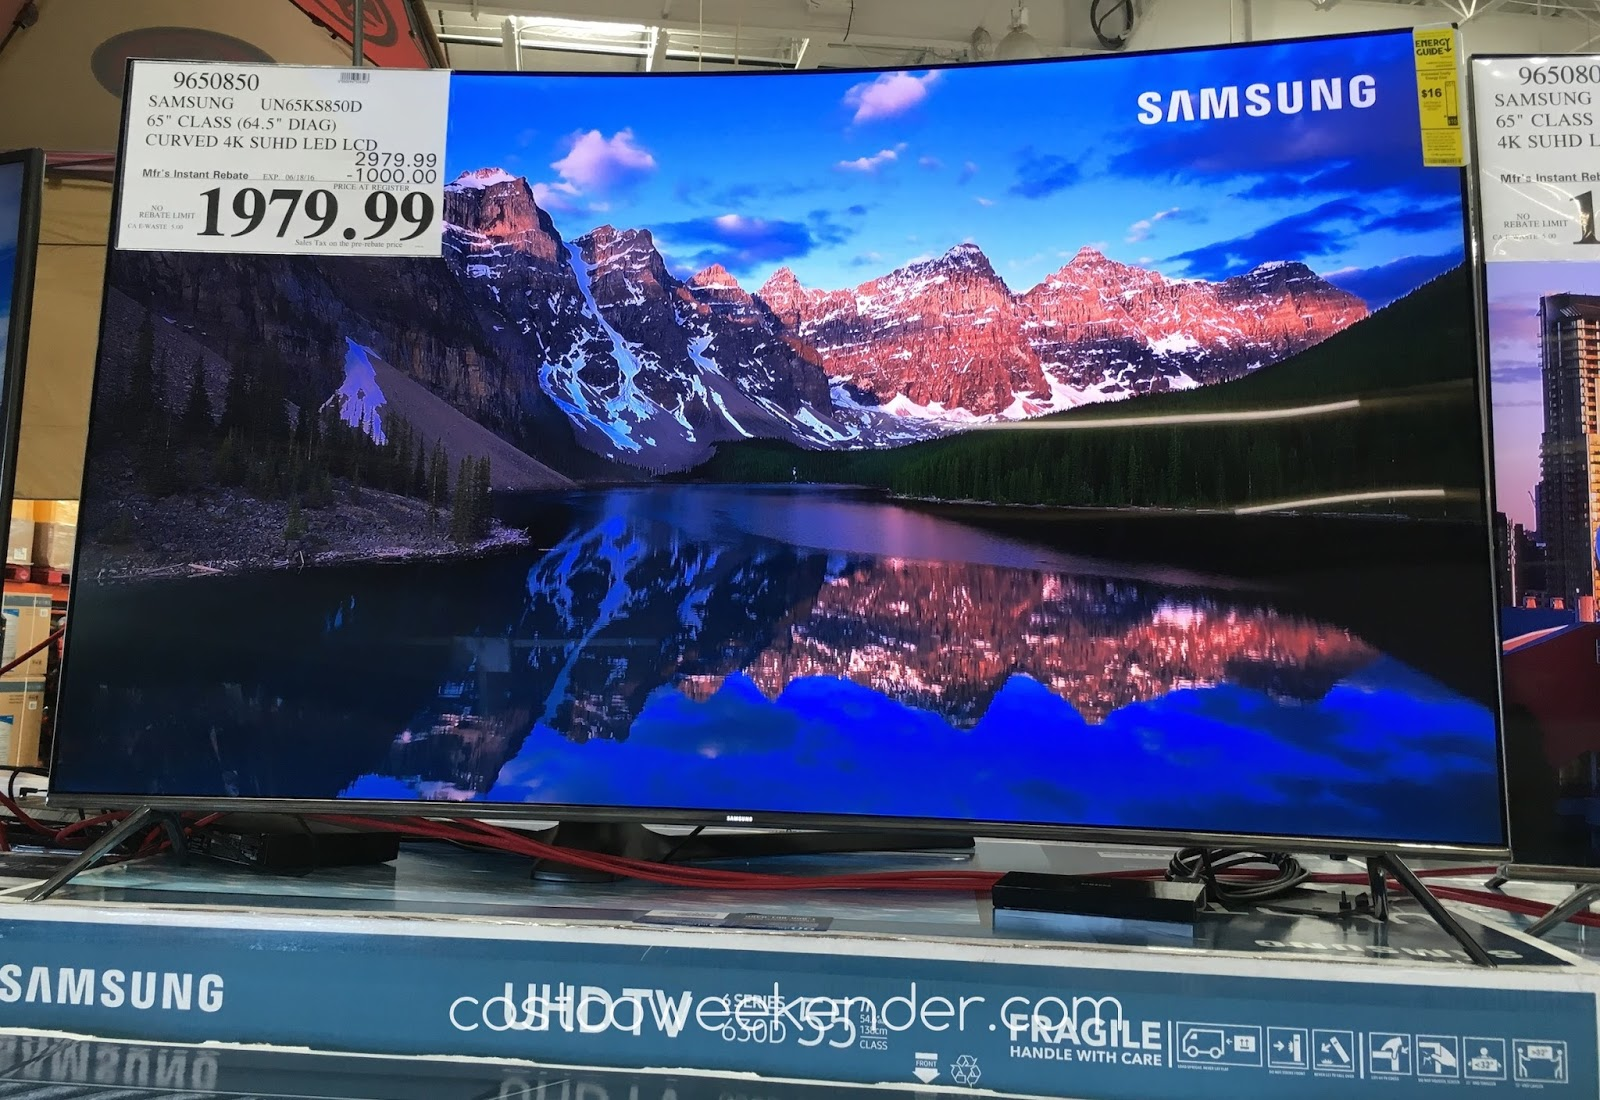 samsung un65ks850d 65 inch curved suhd led lcd tv costco weekender. Black Bedroom Furniture Sets. Home Design Ideas